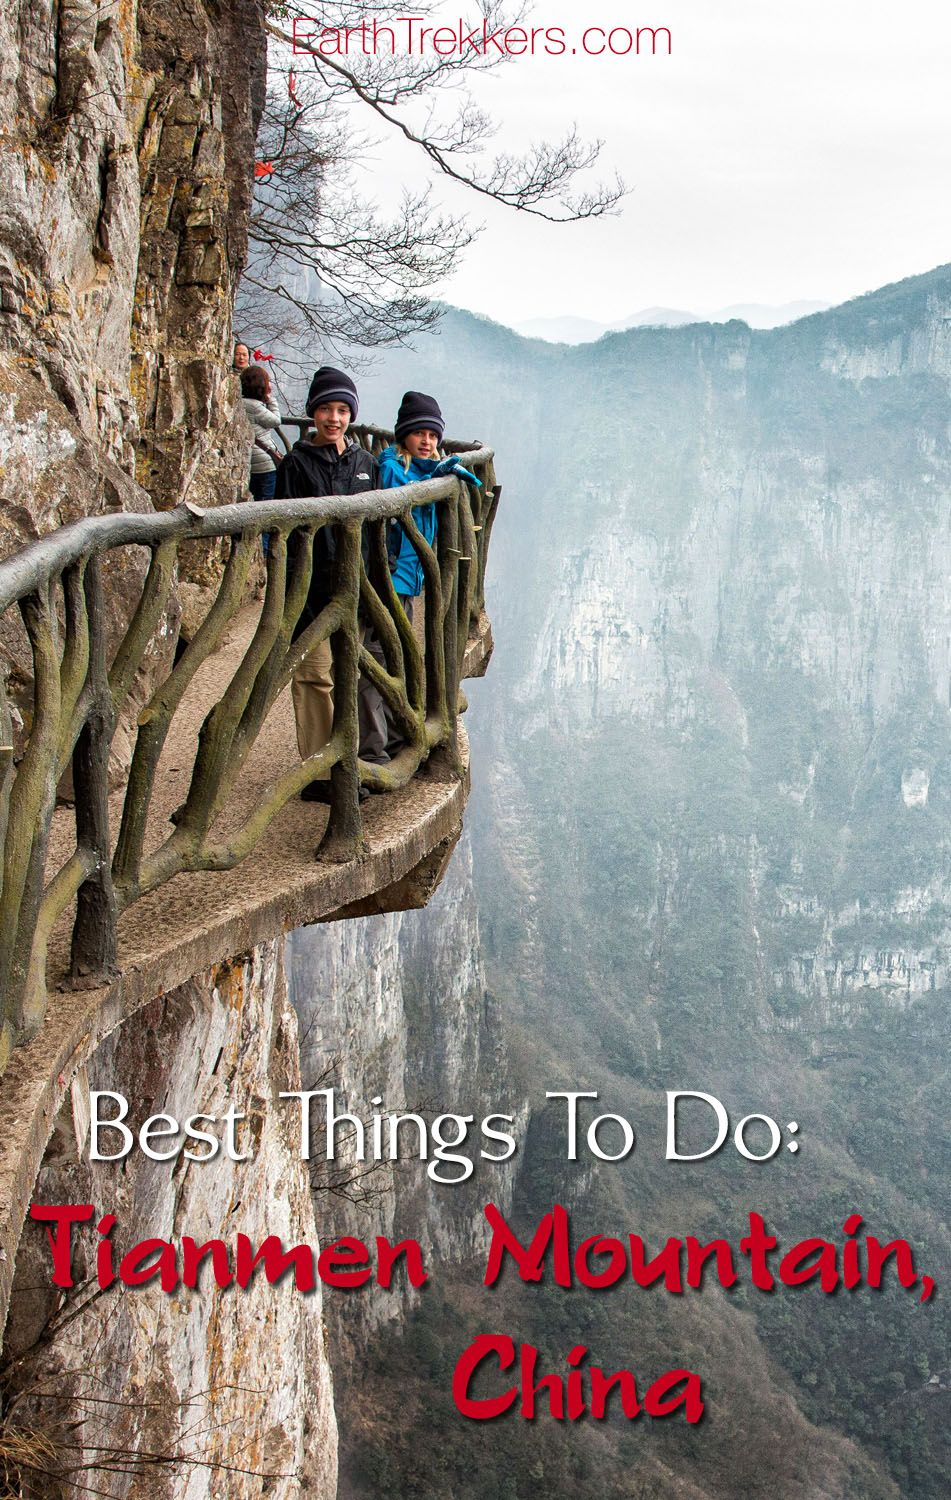 The best things to do on Tianmen Mountain, China